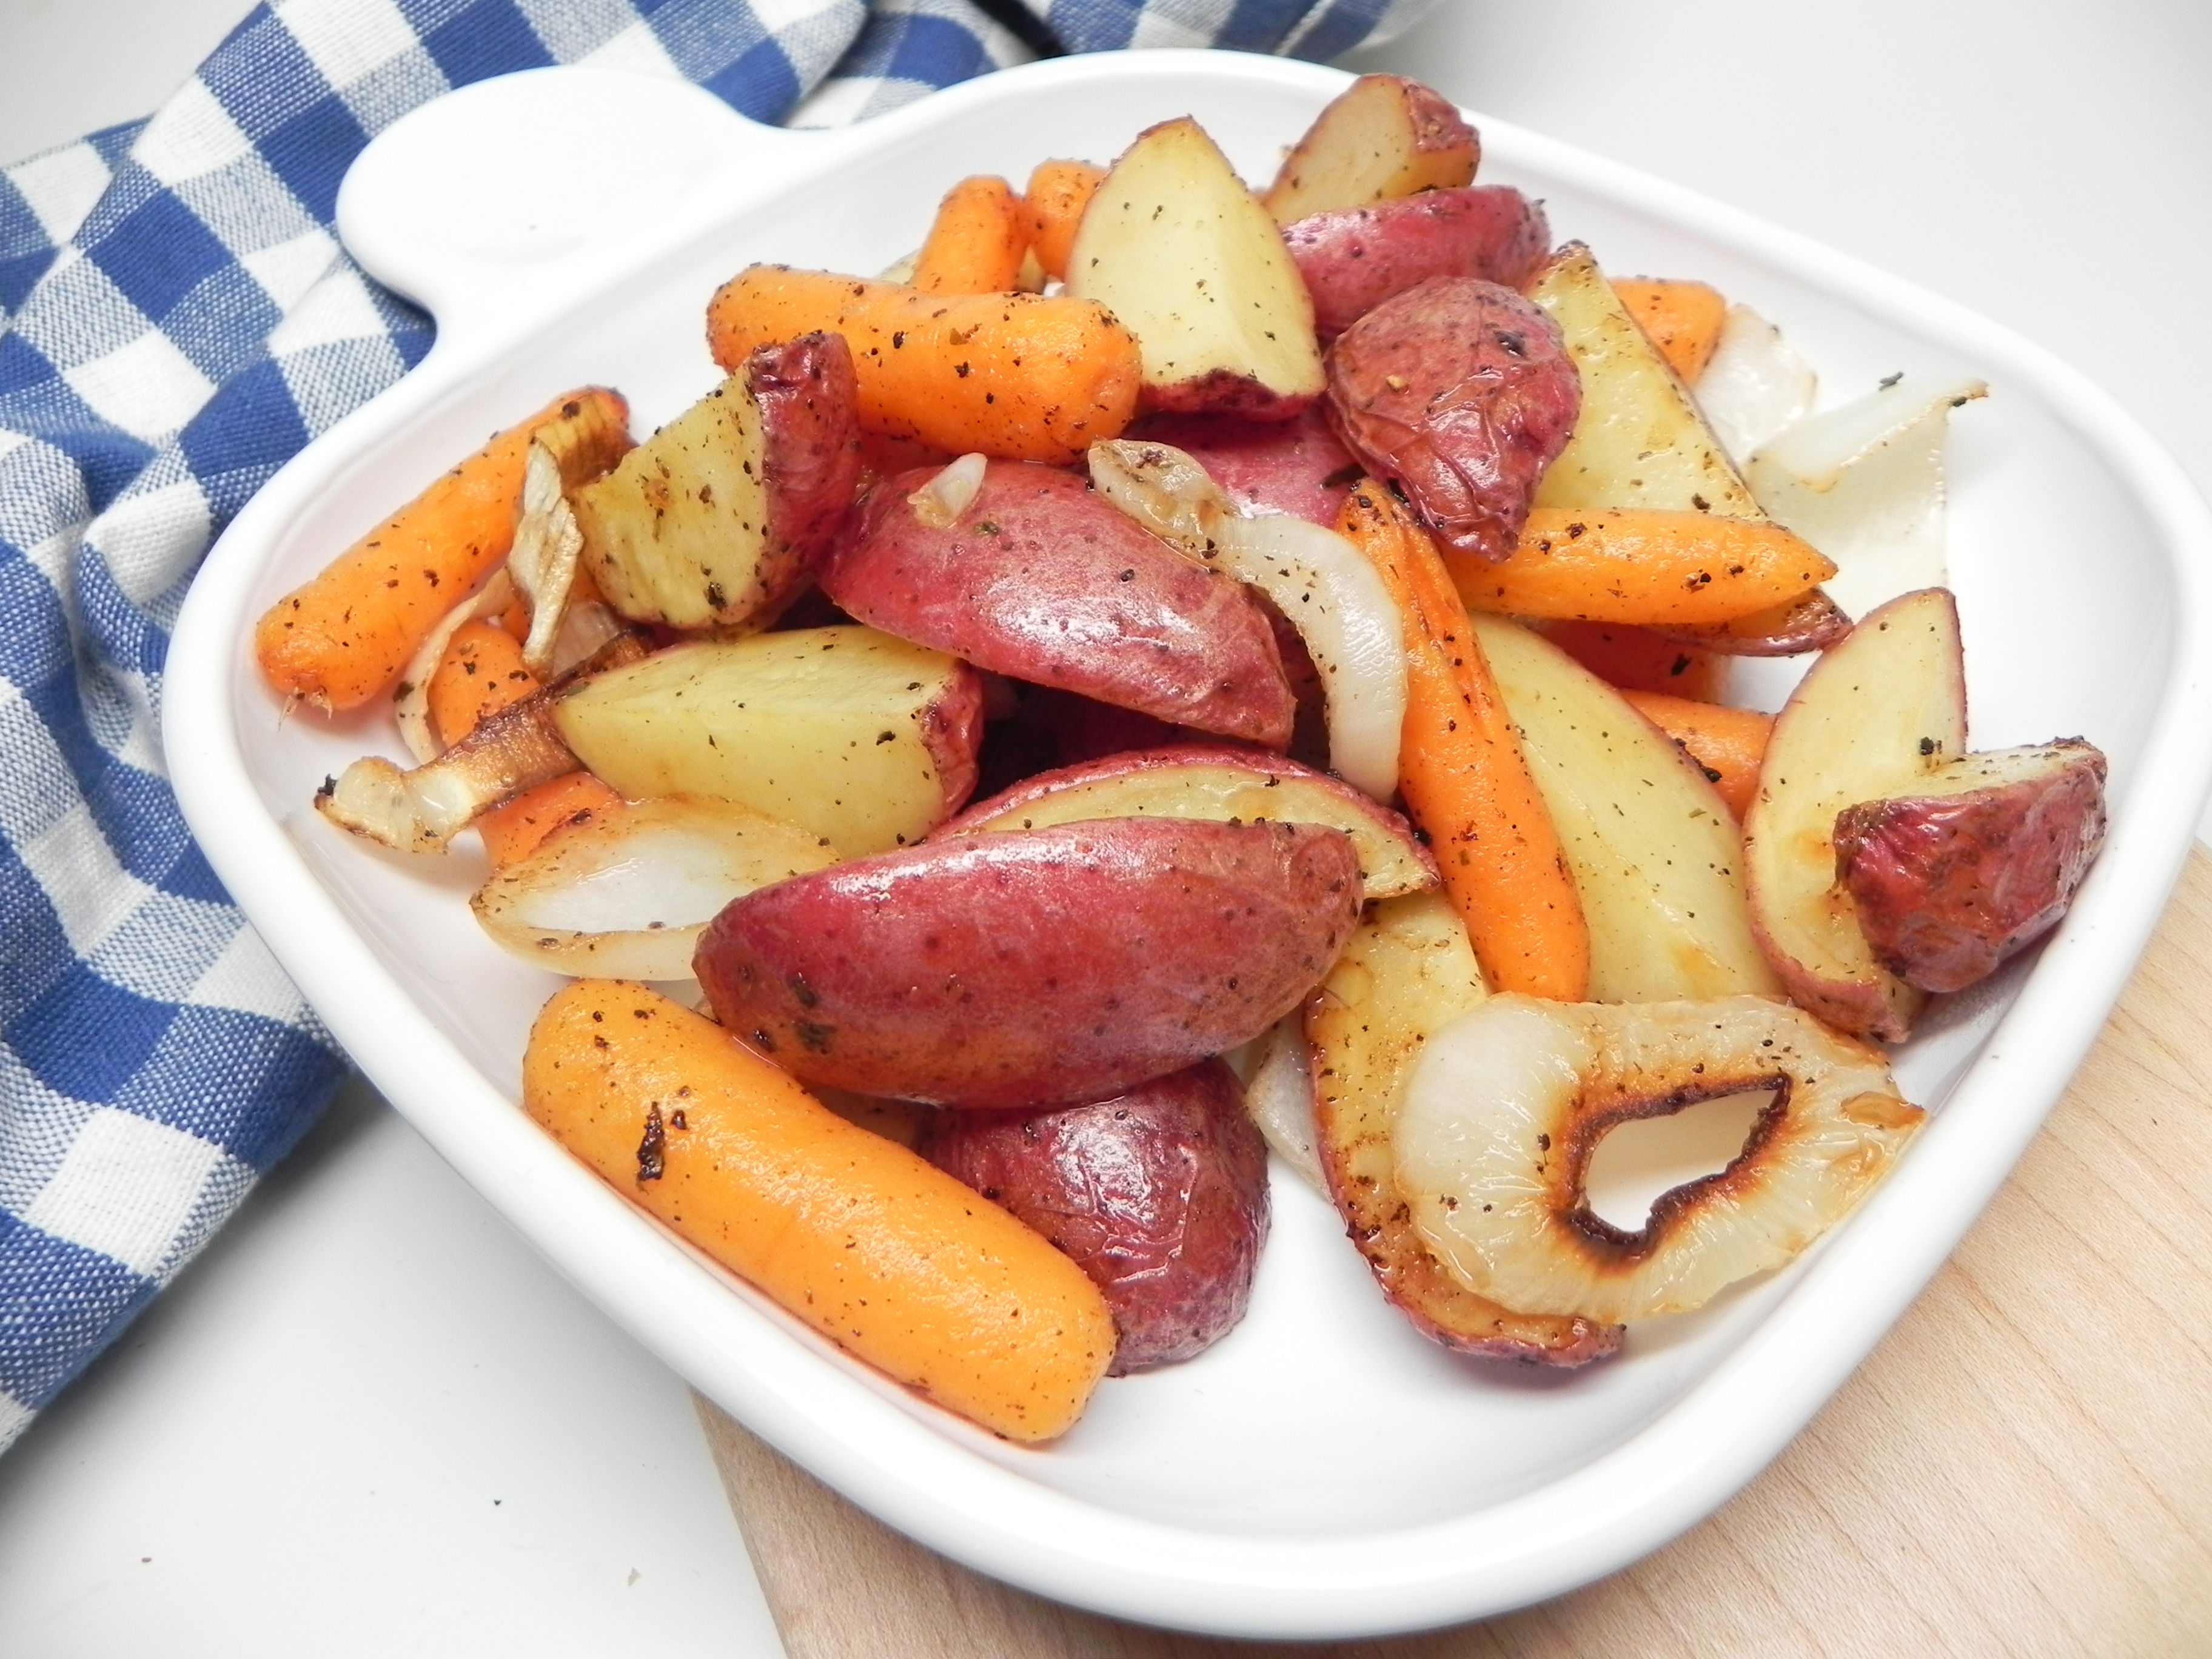 Roasted Potatoes and Carrots with Ranch Seasoning